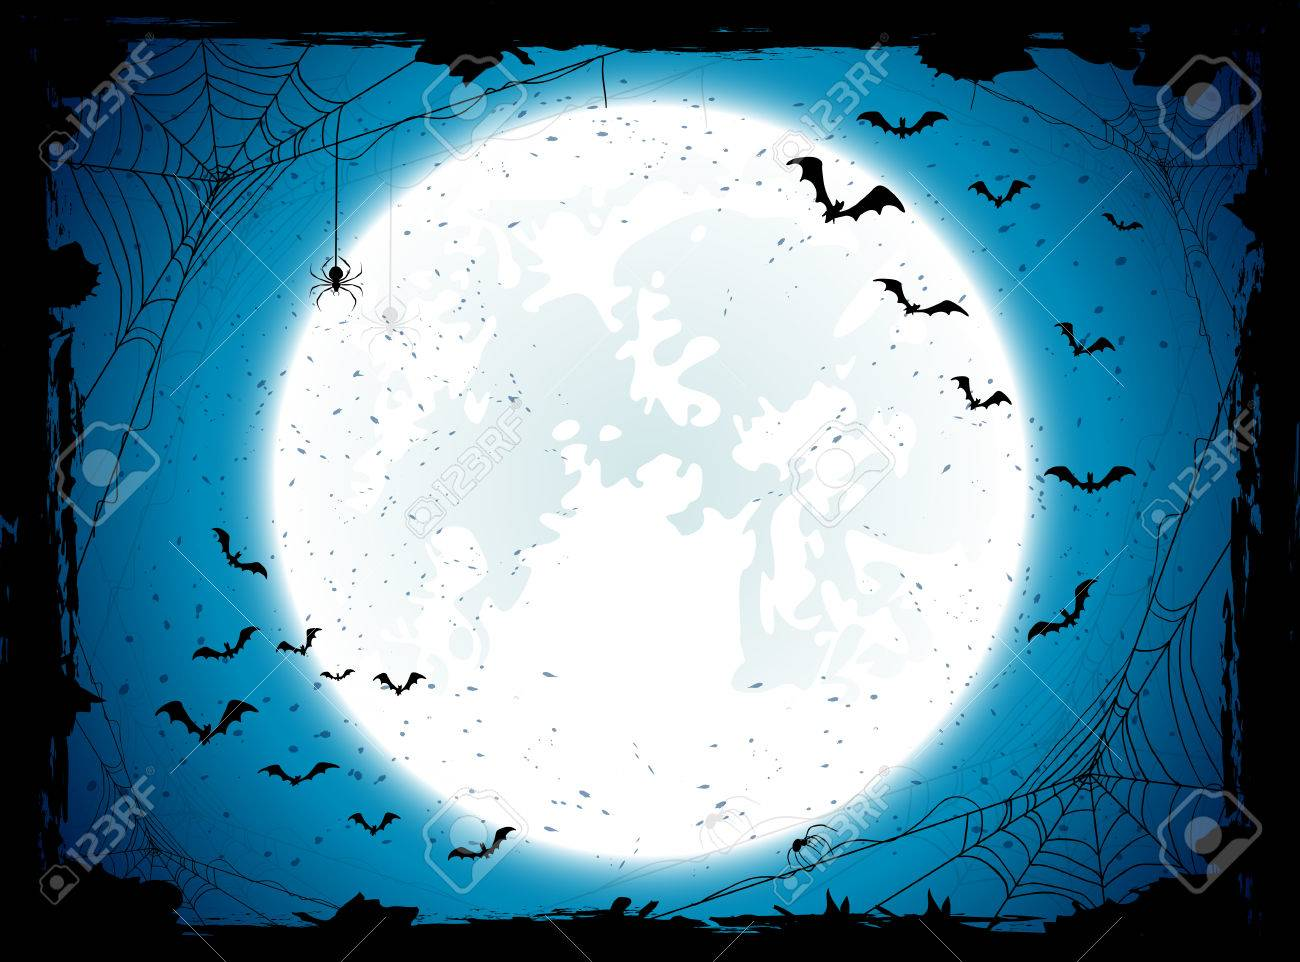 Dark Halloween background with Moon on blue sky, spiders and bats, illustration. - 43539916